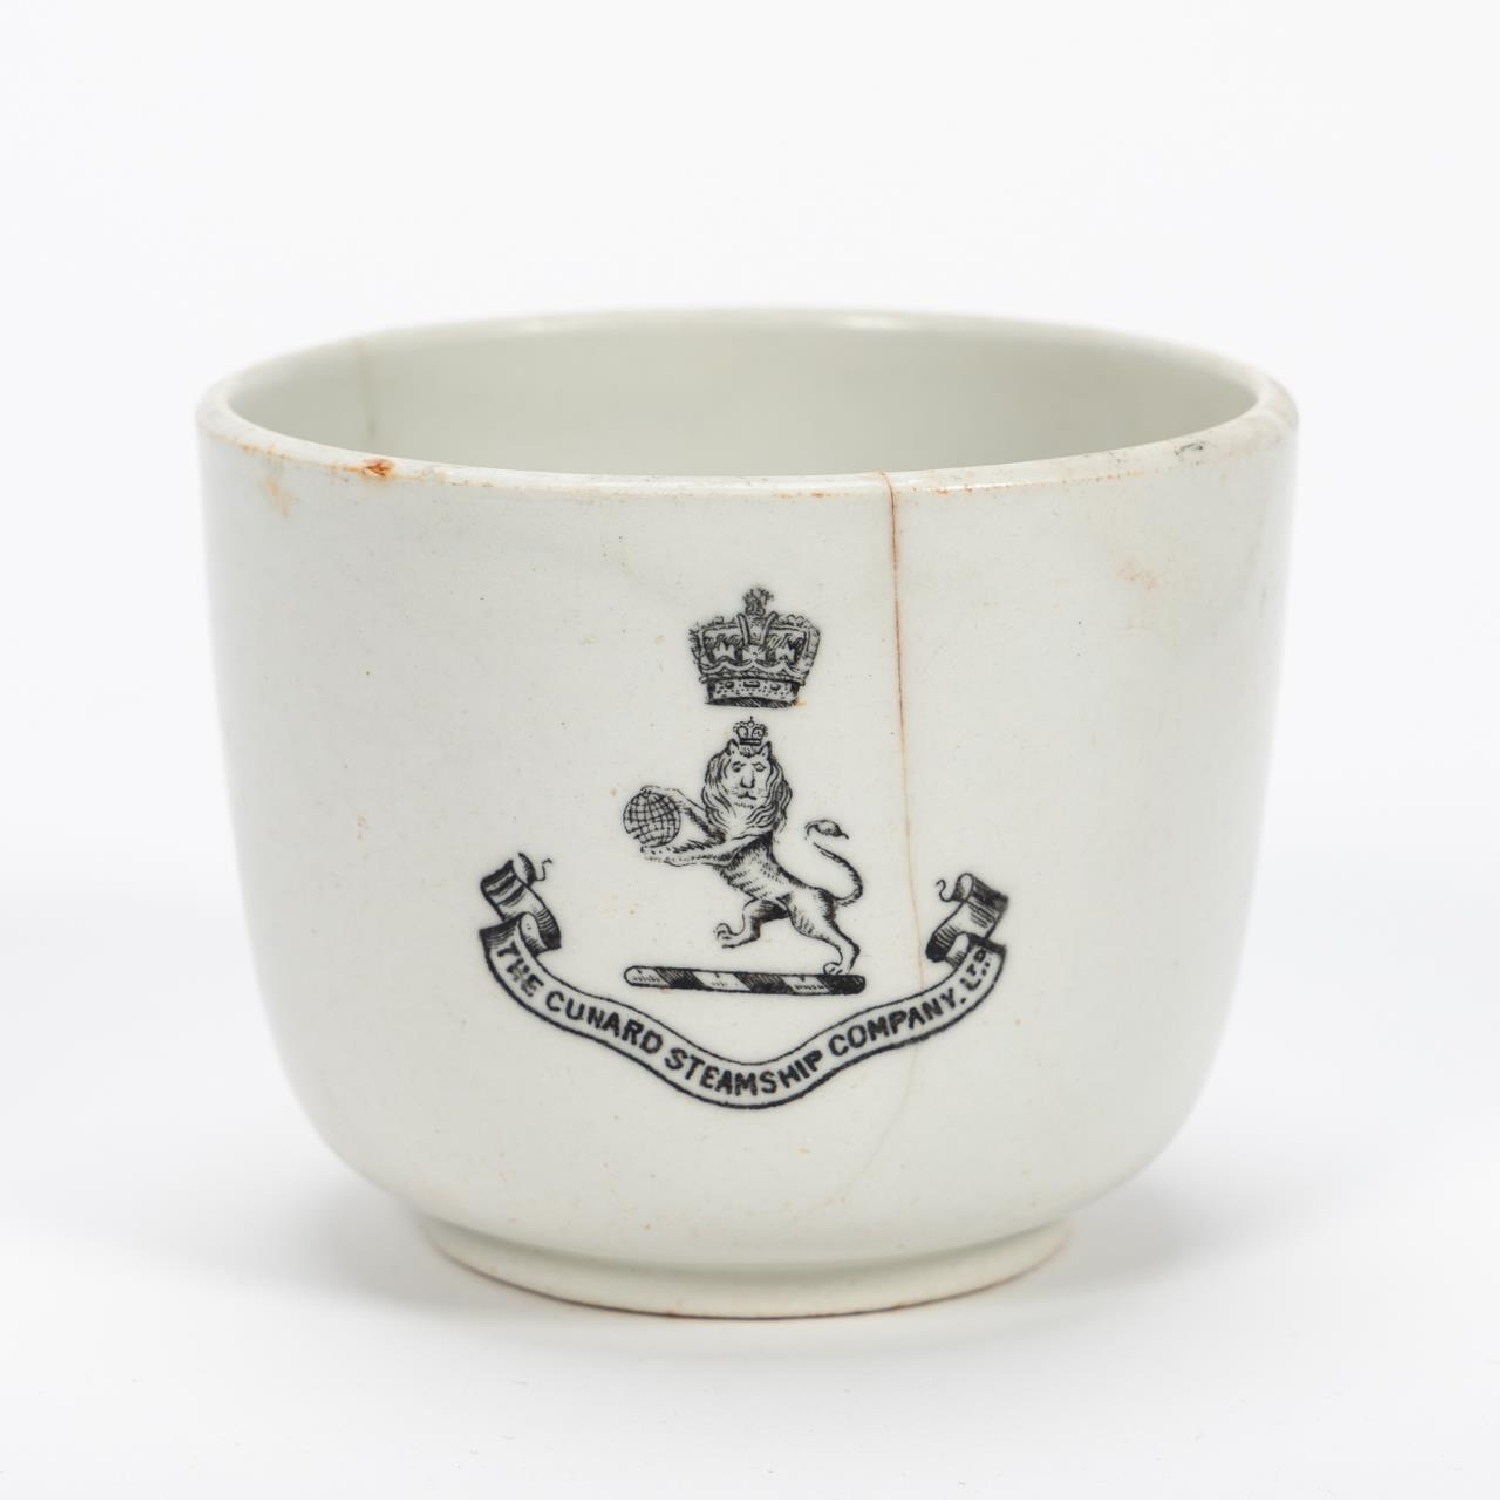 RMS CARPATHIA, SALVAGED THIRD CLASS CUP WITH LOGO - Image 2 of 9